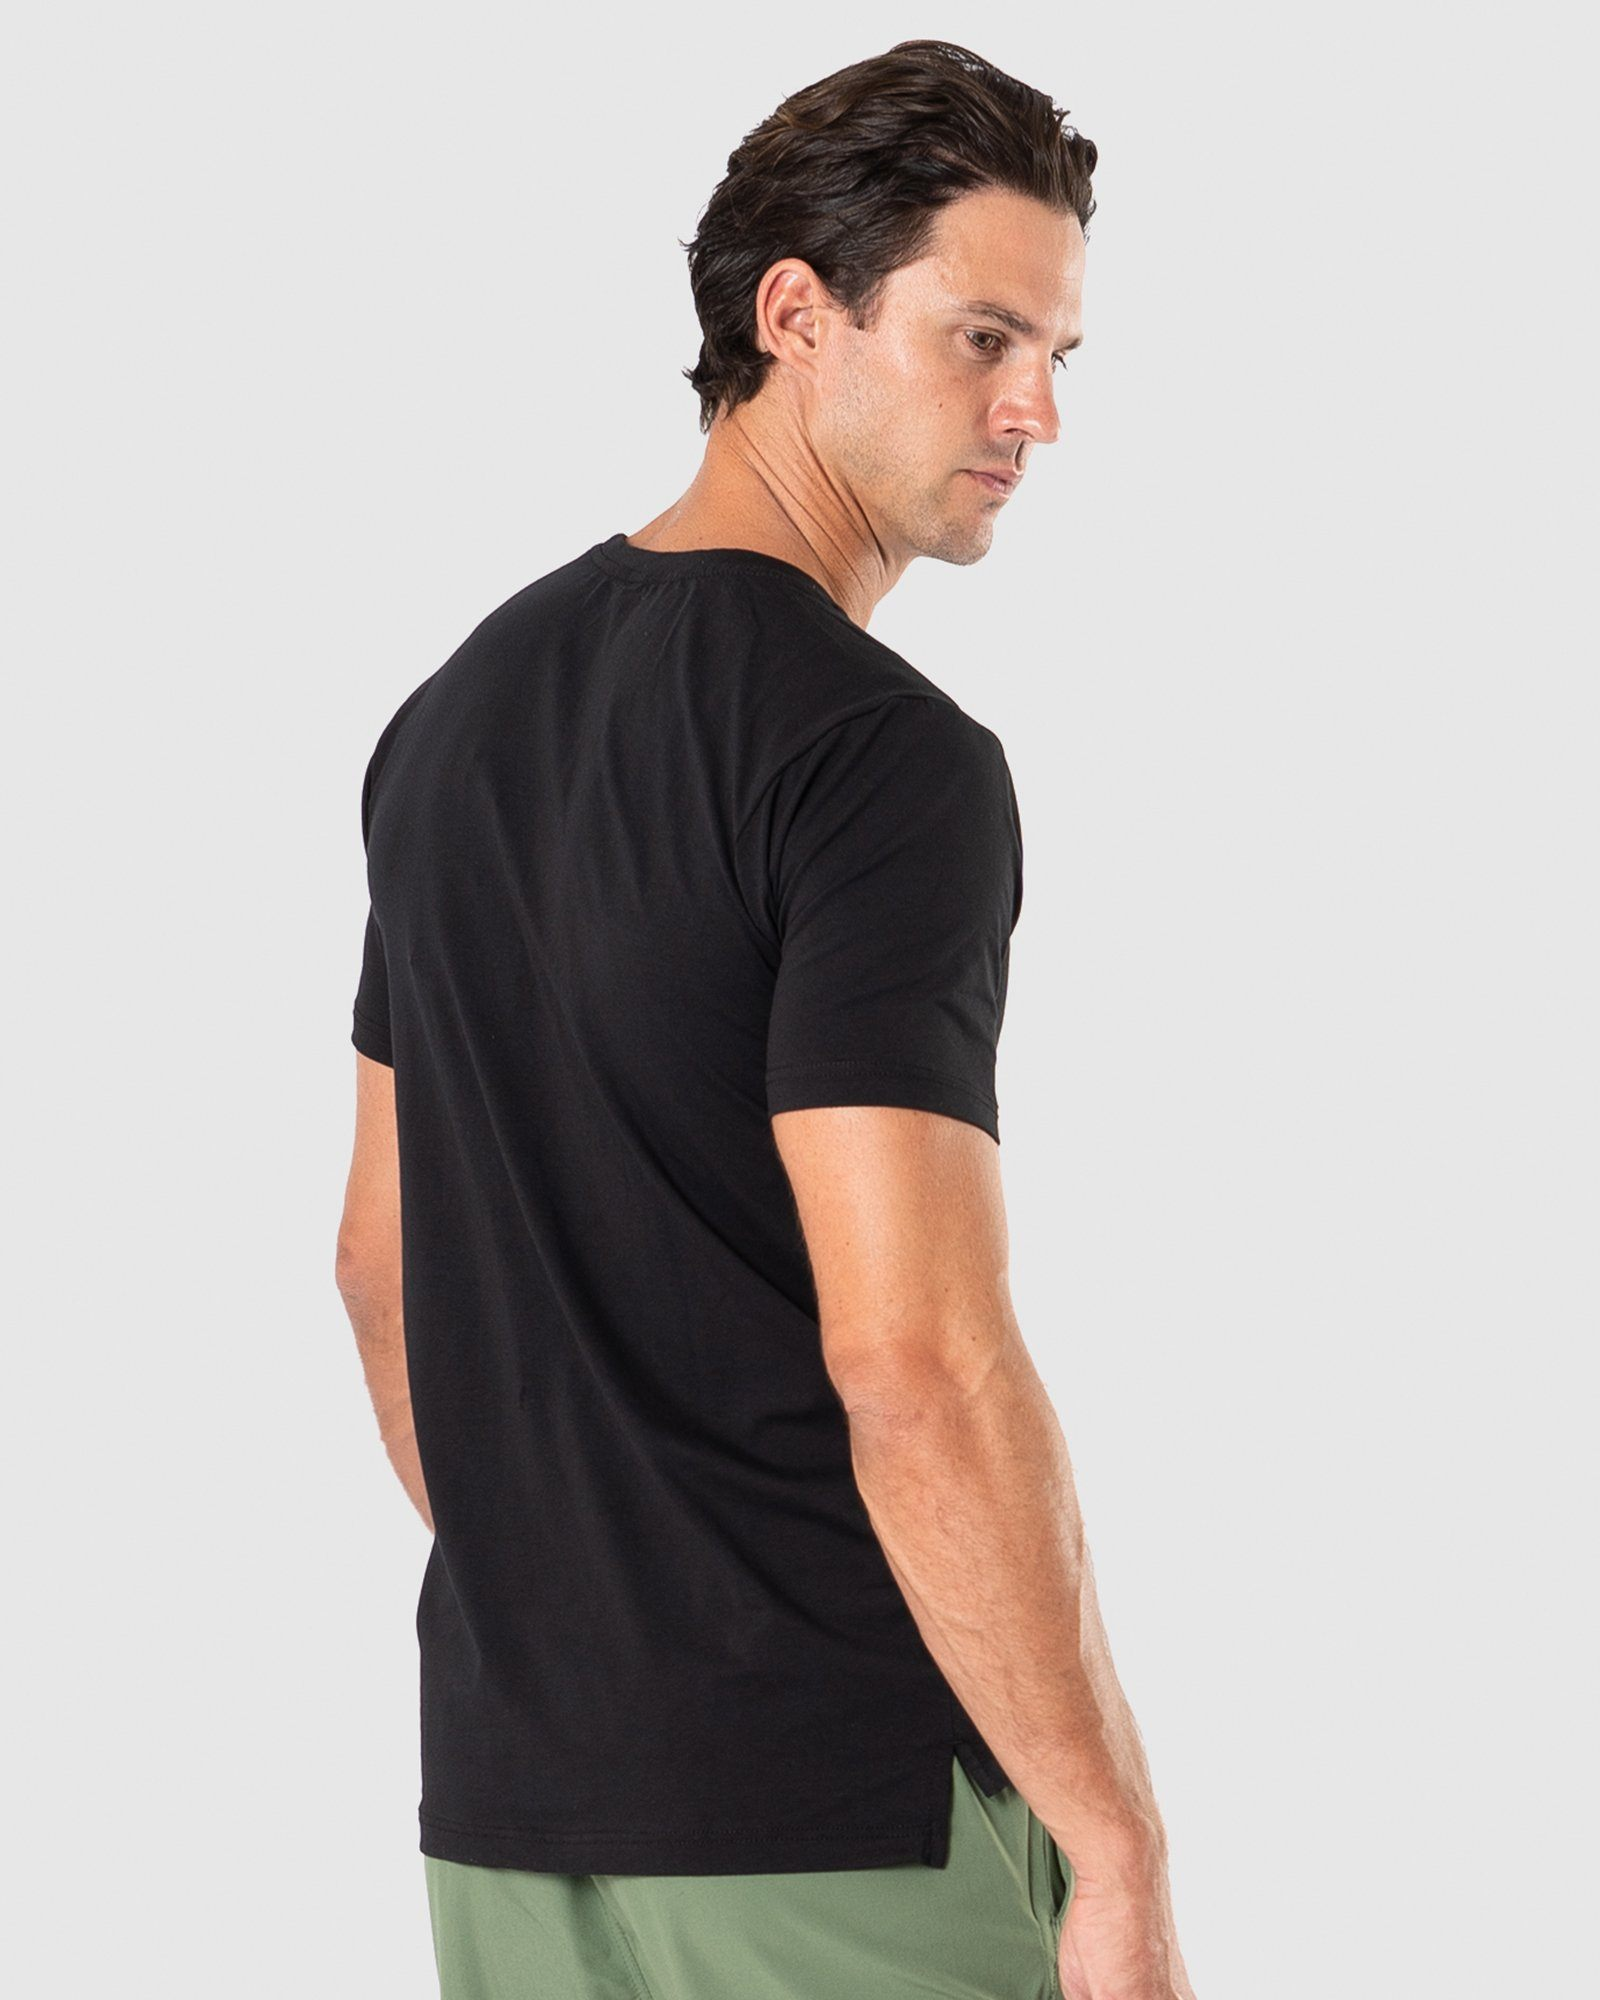 WPN Fundamental Tee - Black